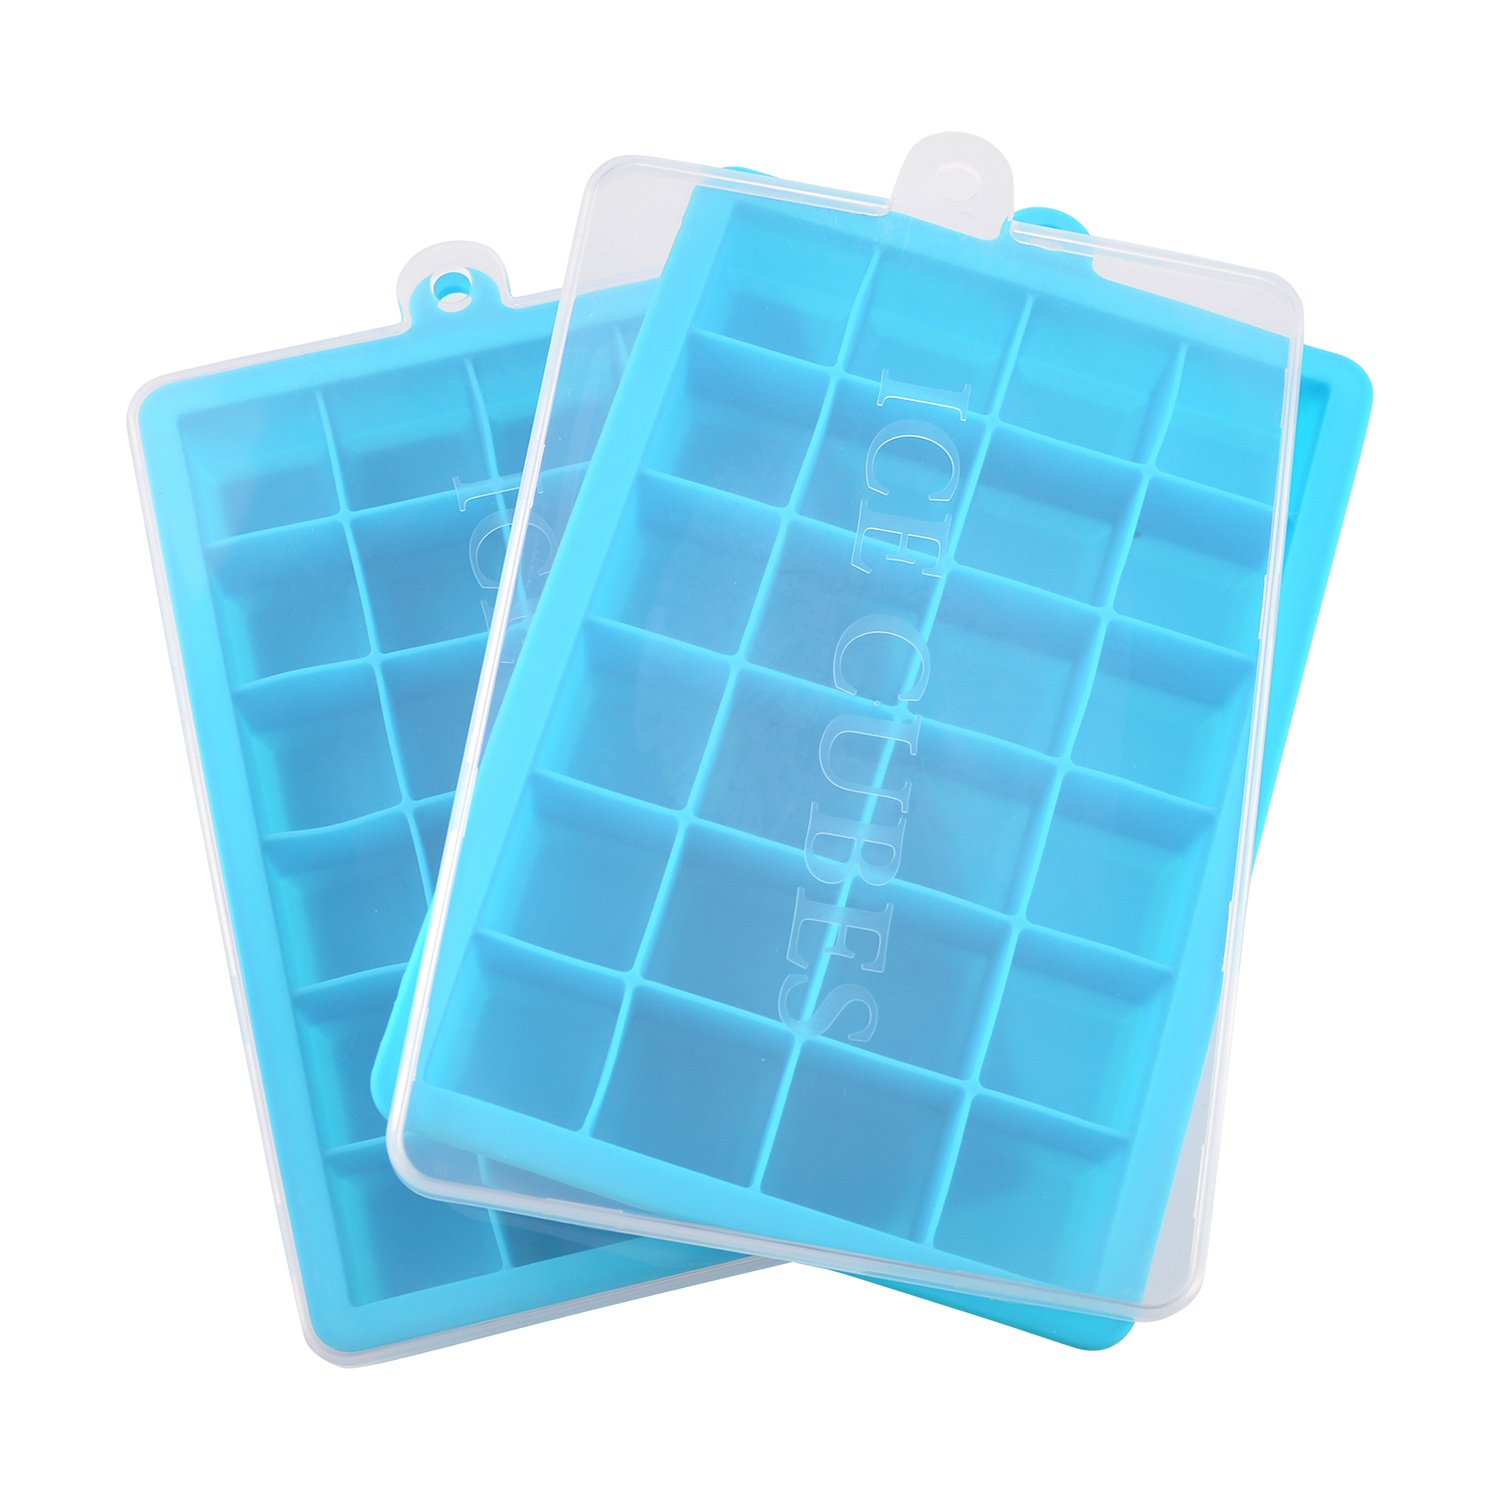 Amazoncom Ice Cube Trays With Lid Silicone Ice Tray Molds Easy